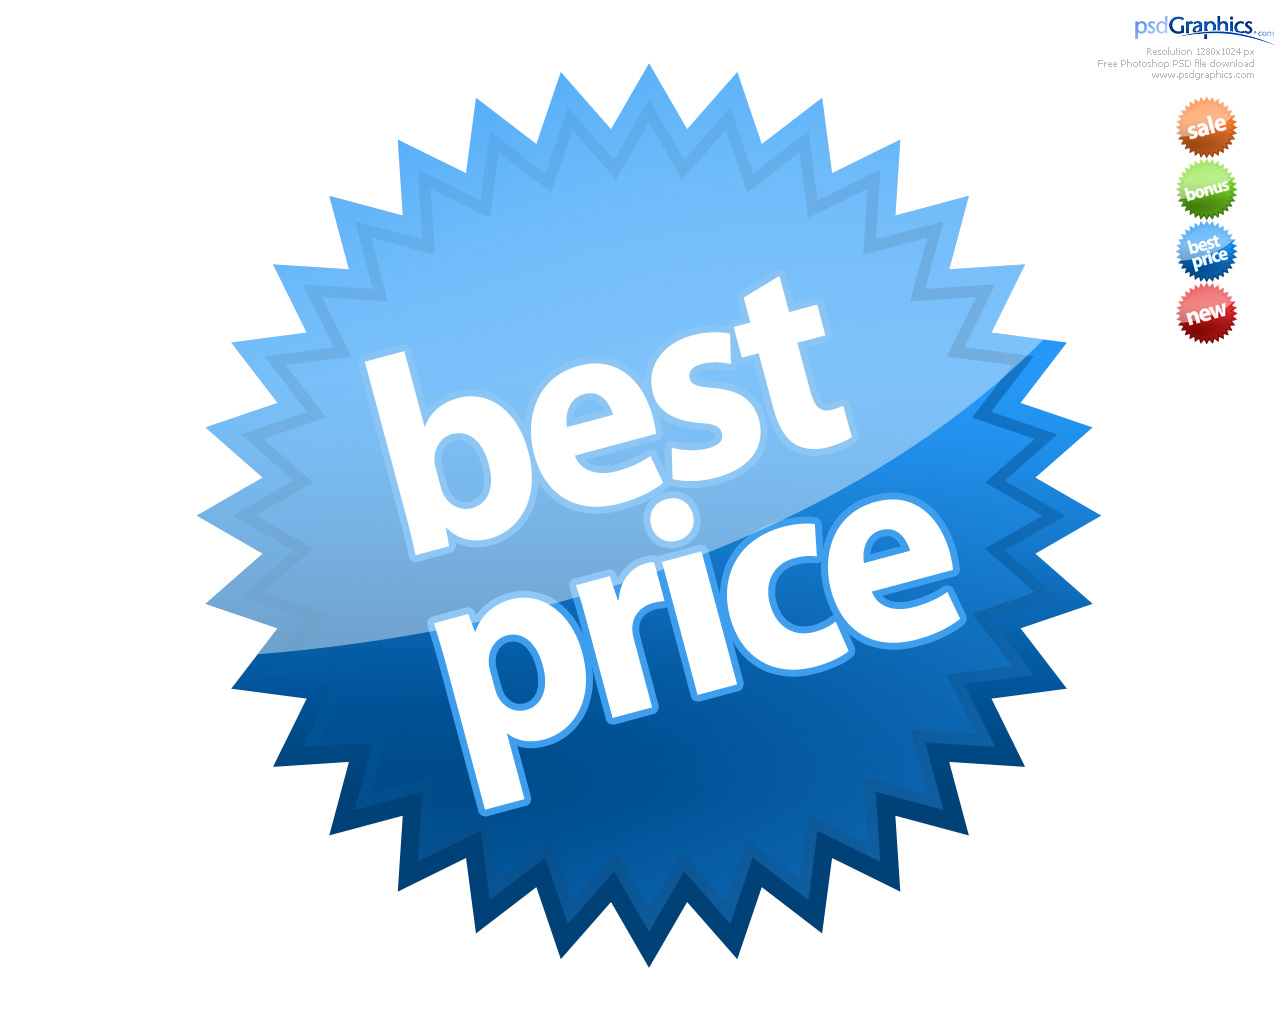 best-price-icon-1280x1024.jpg